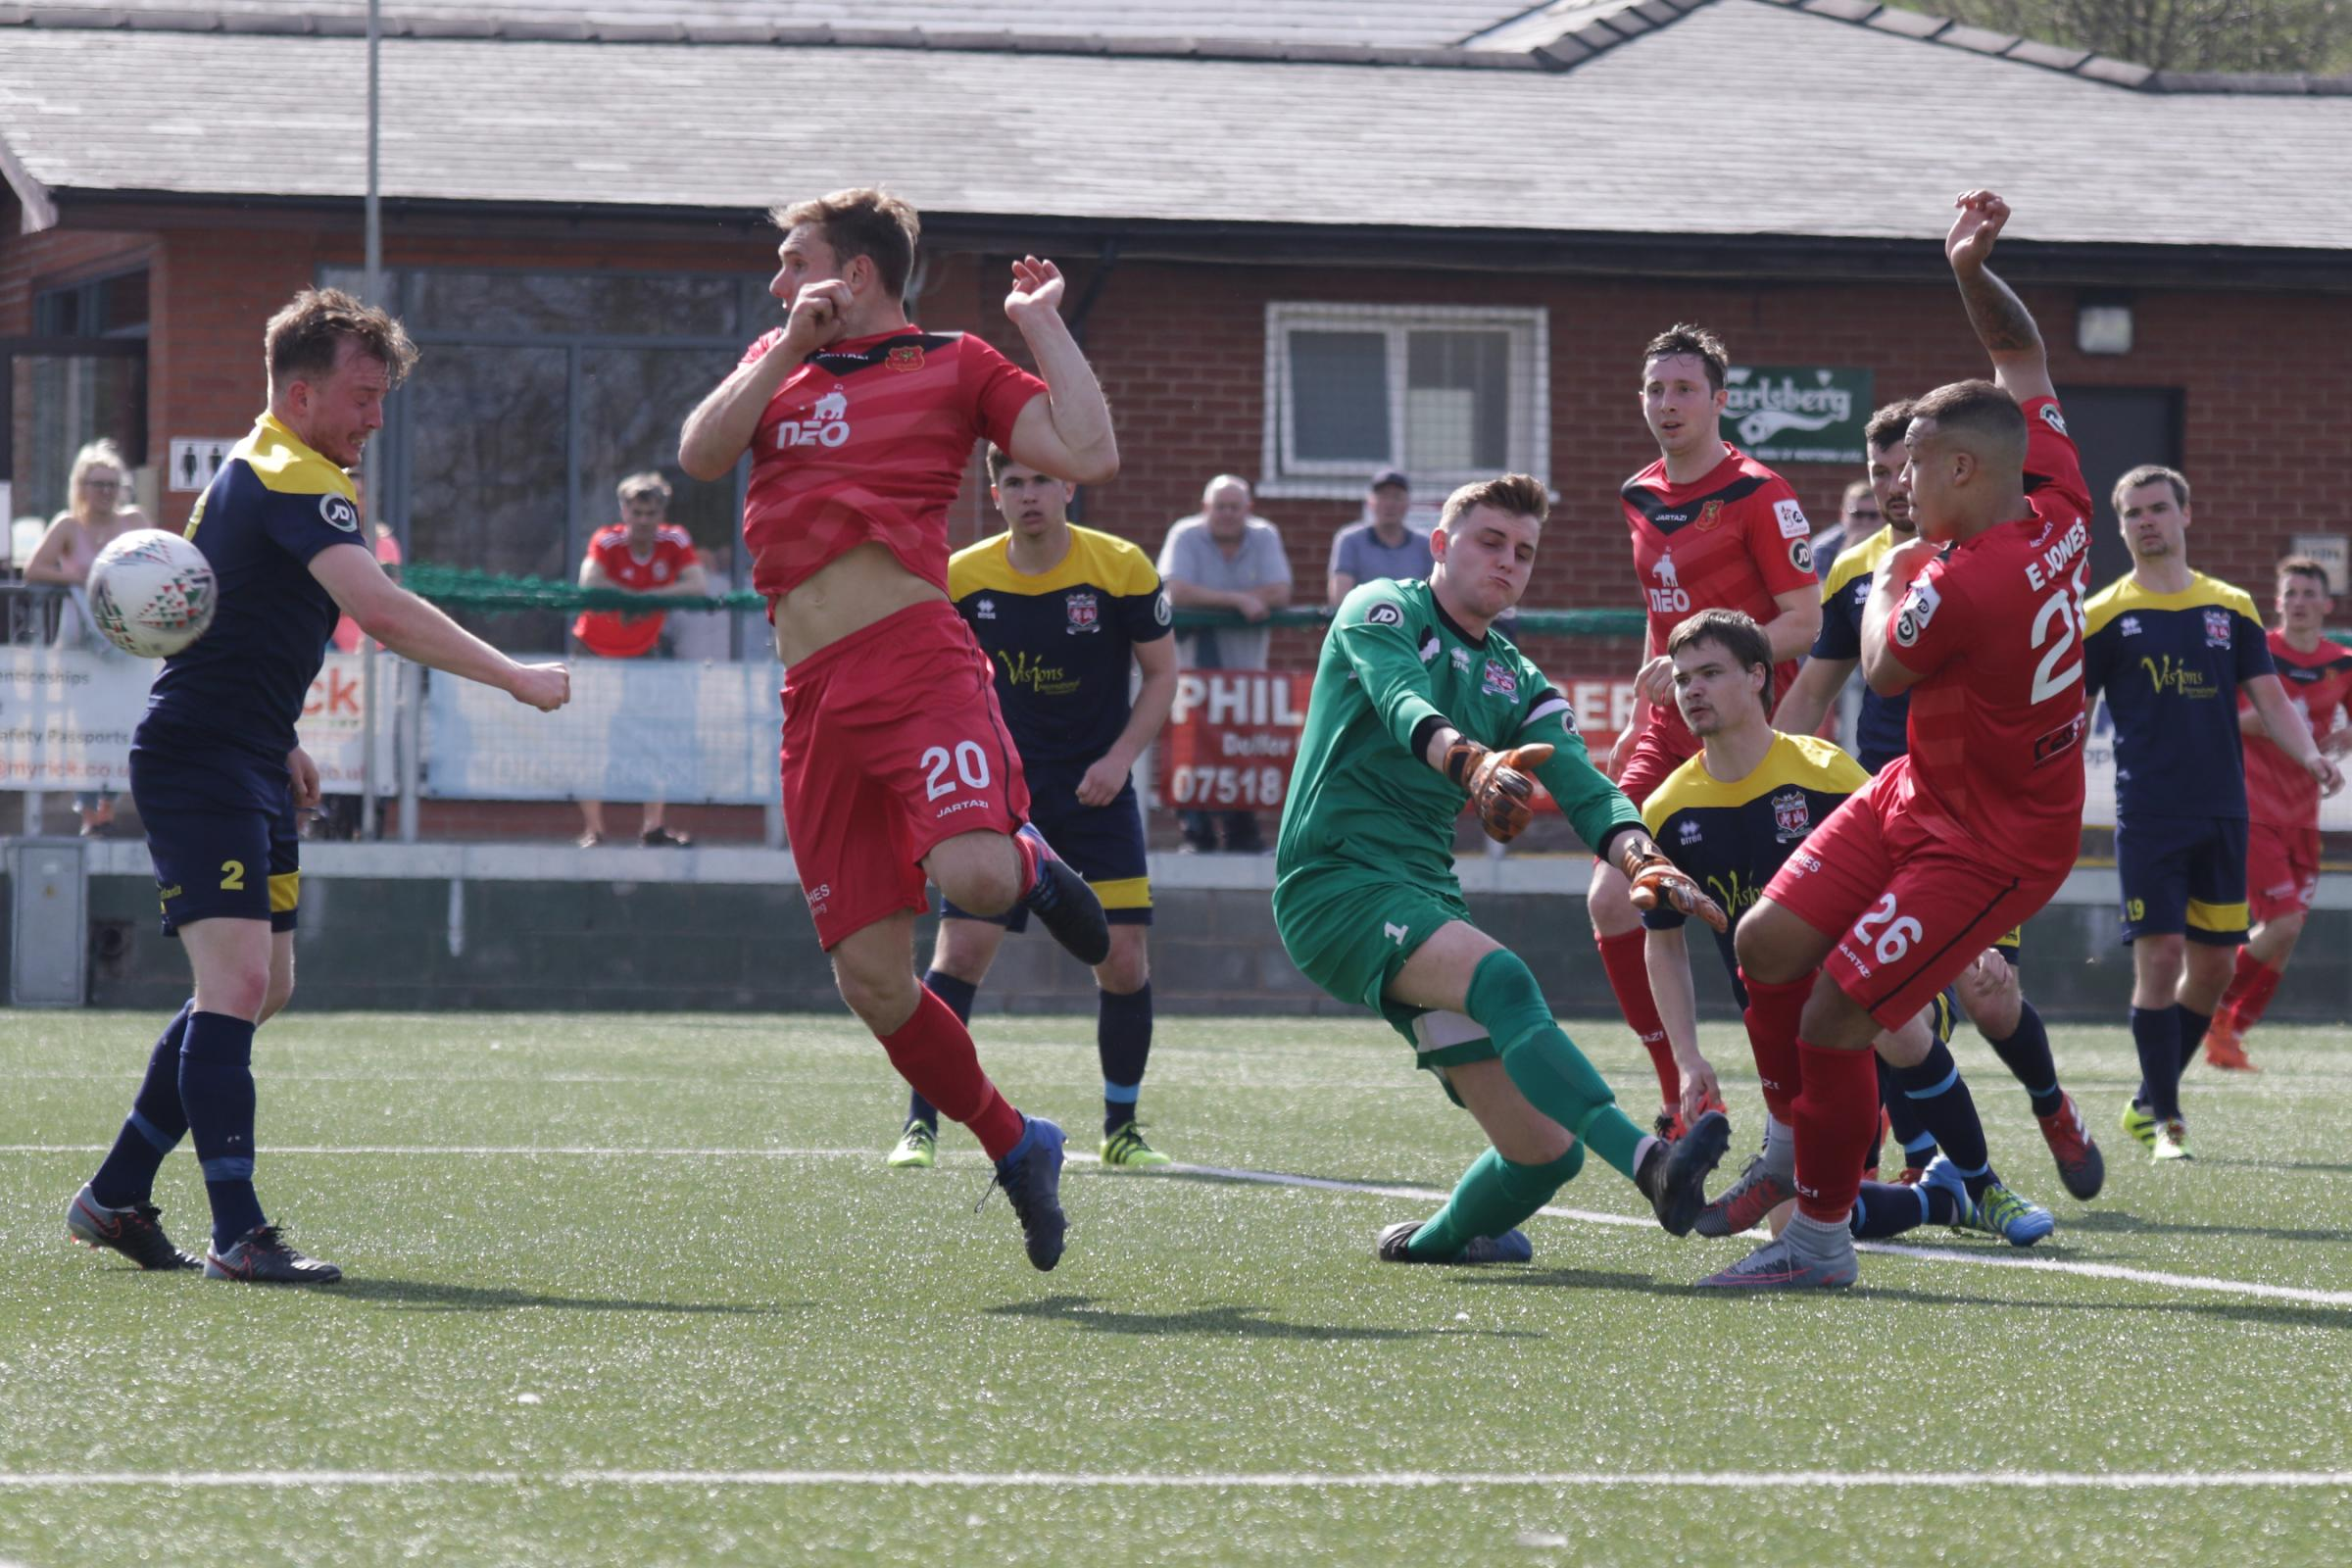 21/4/2018 - GOAL. Ethan Jones of Newtown scores to make it 2-0 during the Welsh Premier League game between Newtown and Prestatyn at Latham Park...Pic: Mike Sheridan/County Times.MS085-2018.